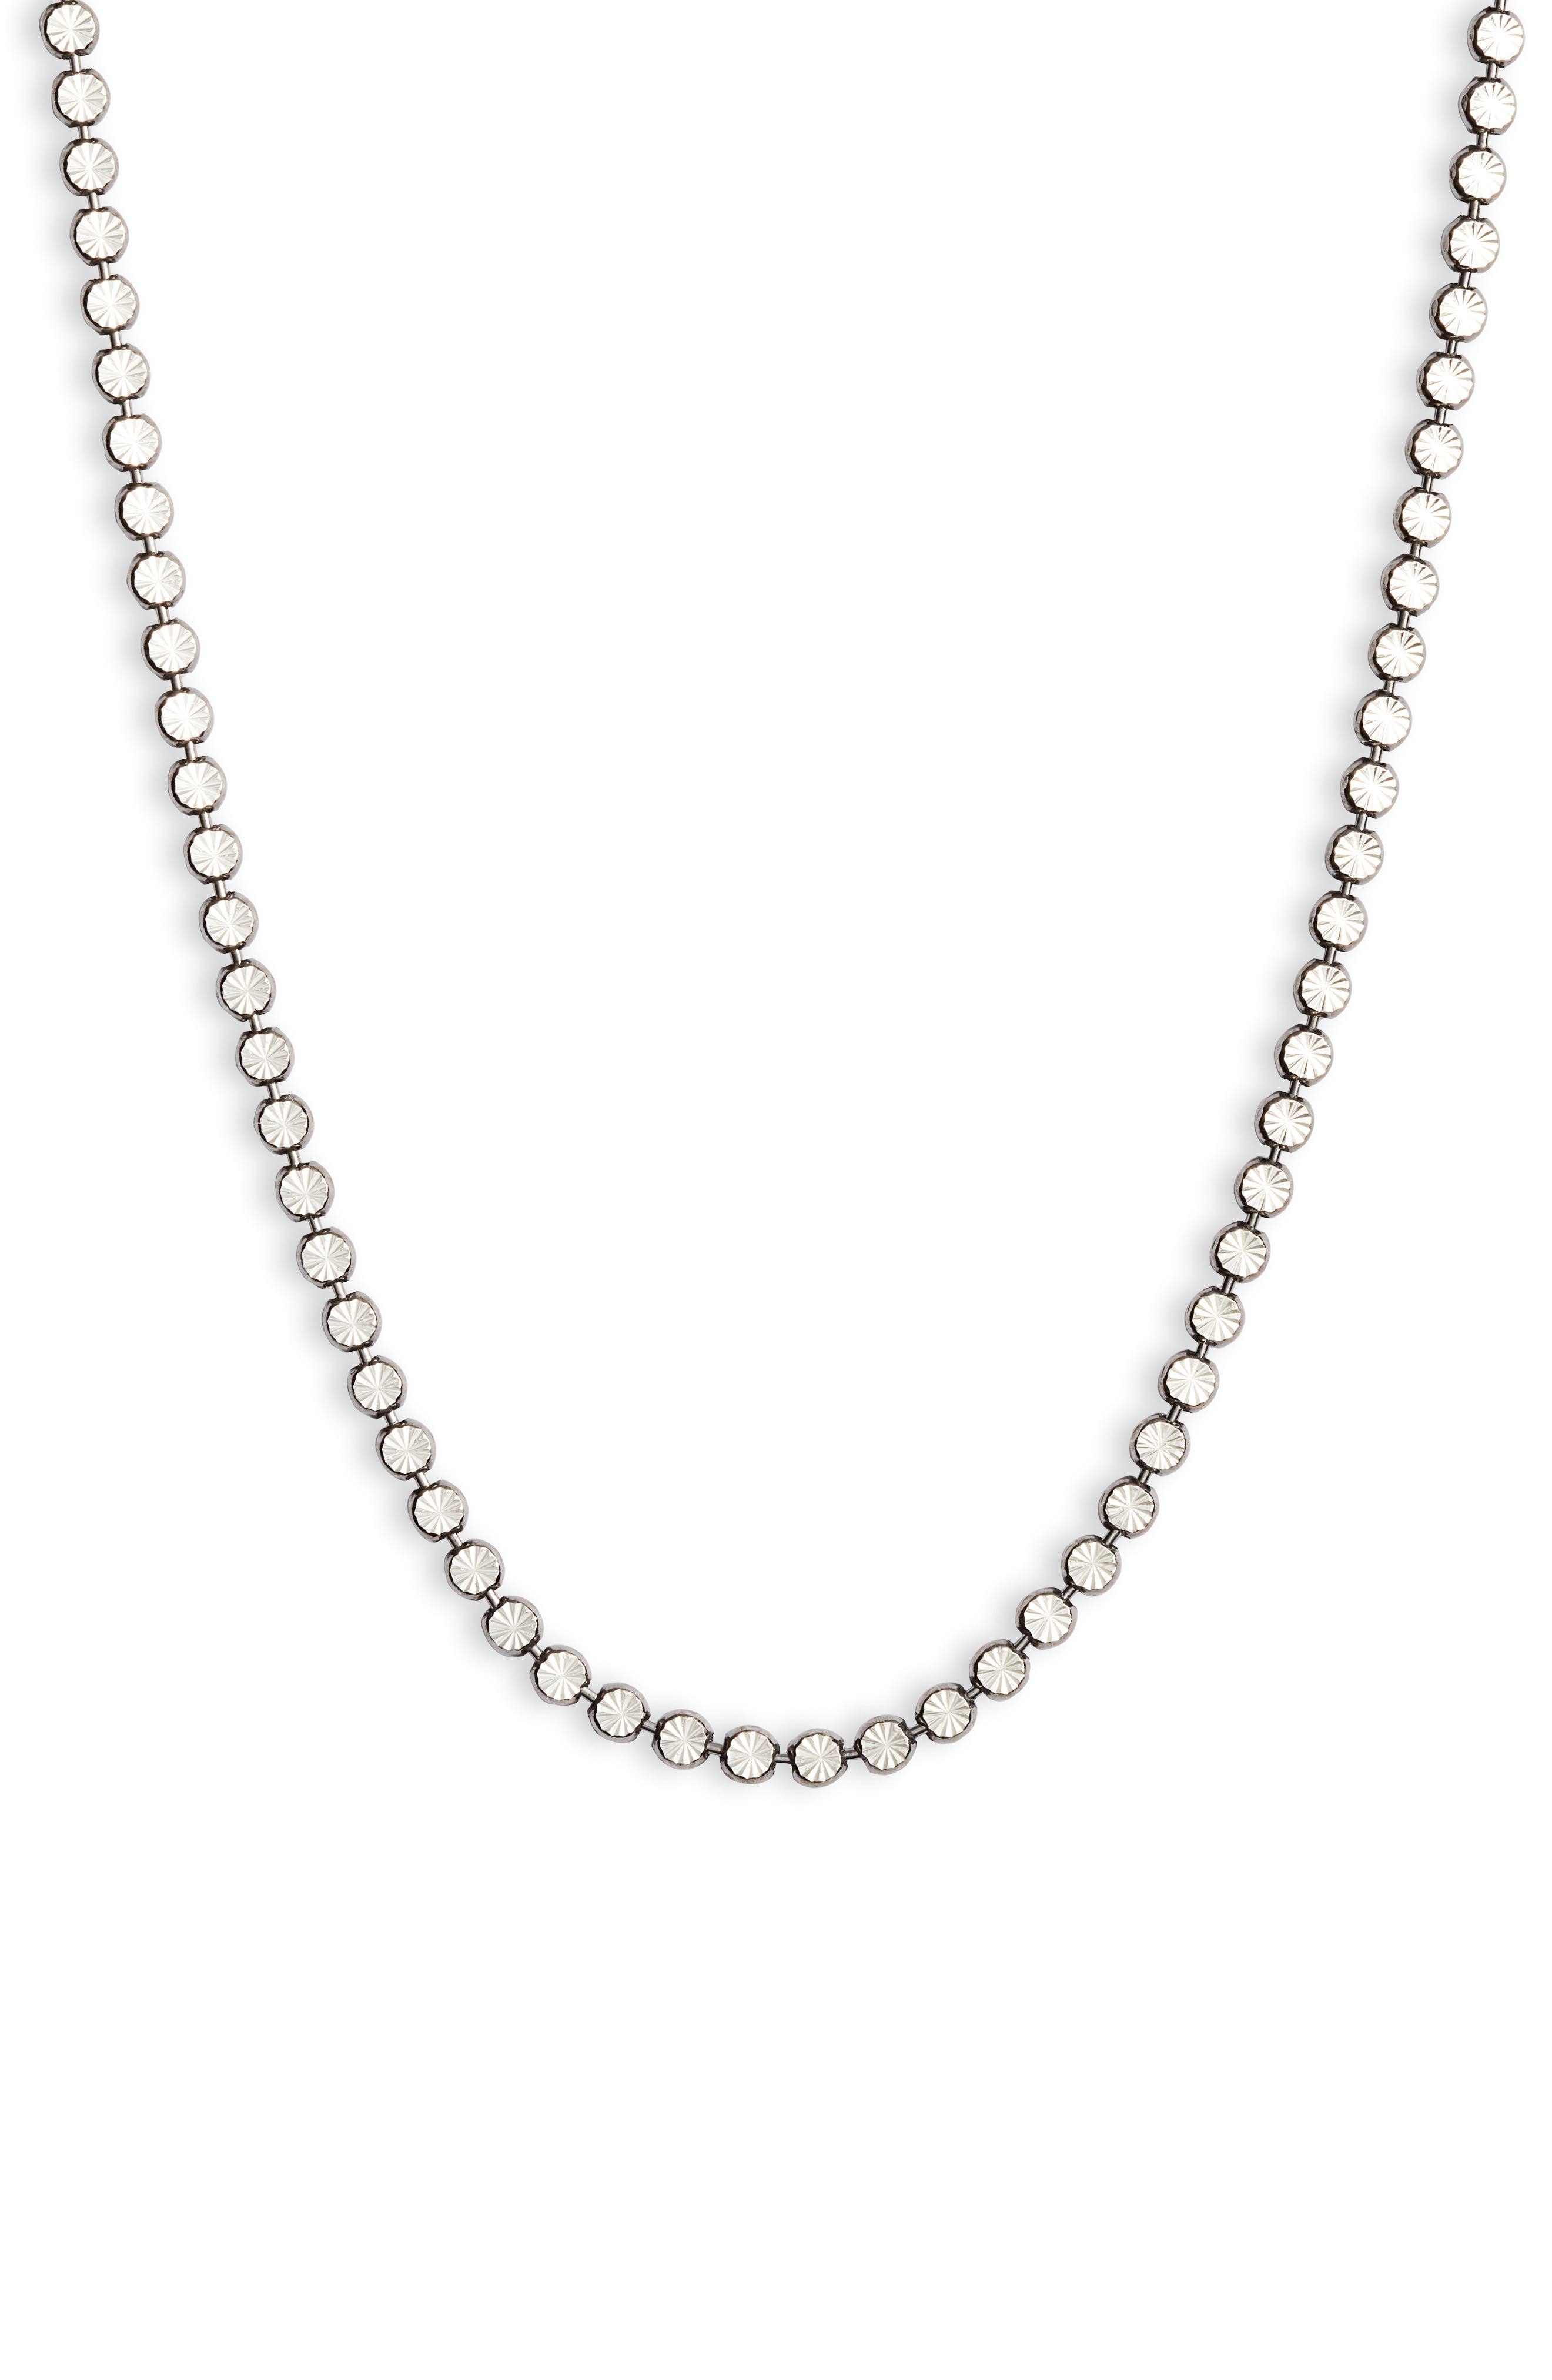 Etched Sterling Silver Necklace